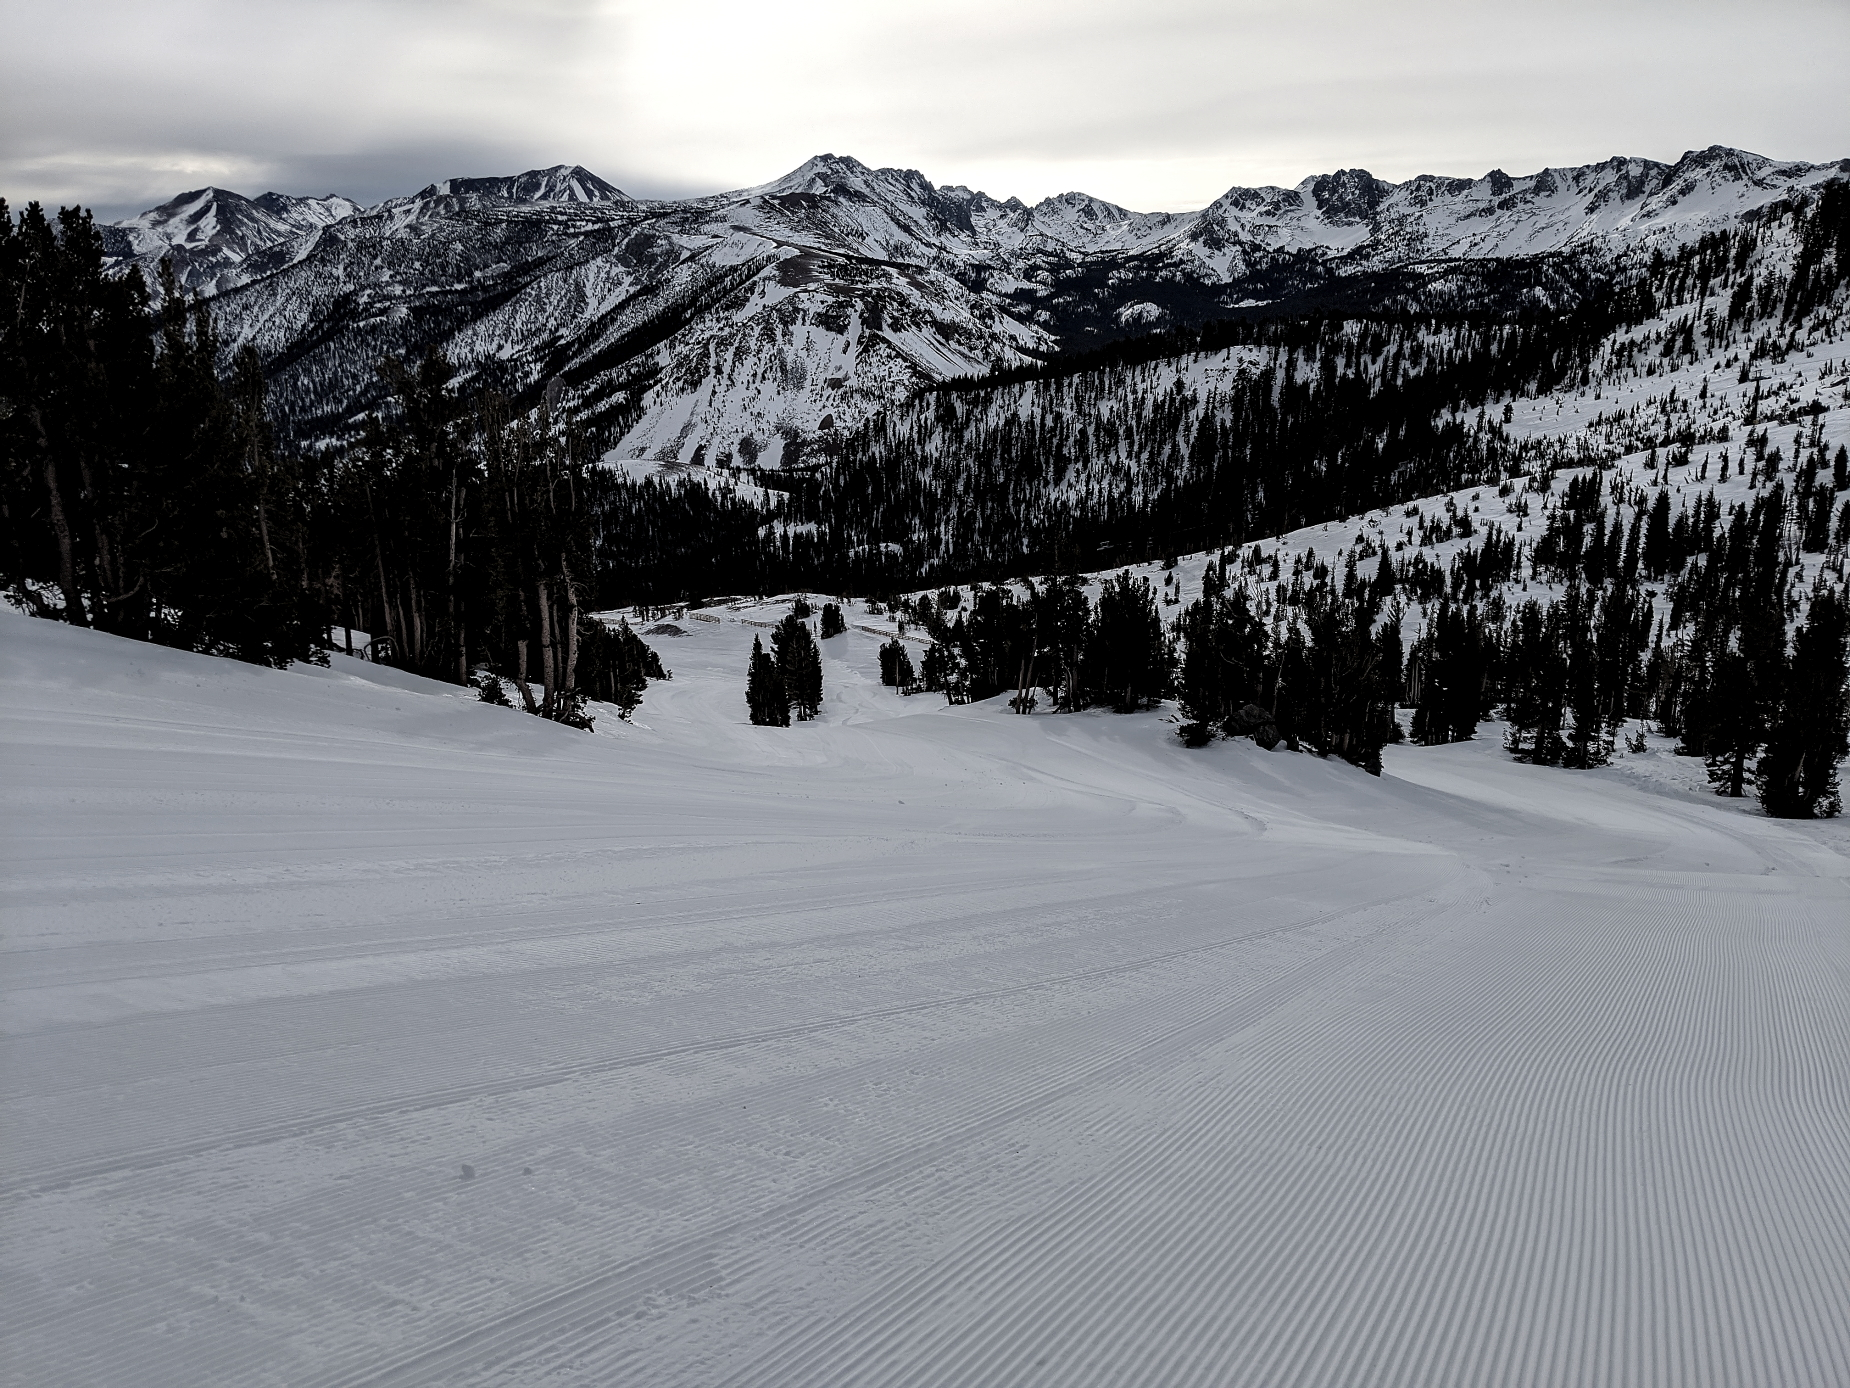 Mammoth Mountain Photos January 19th, 2020